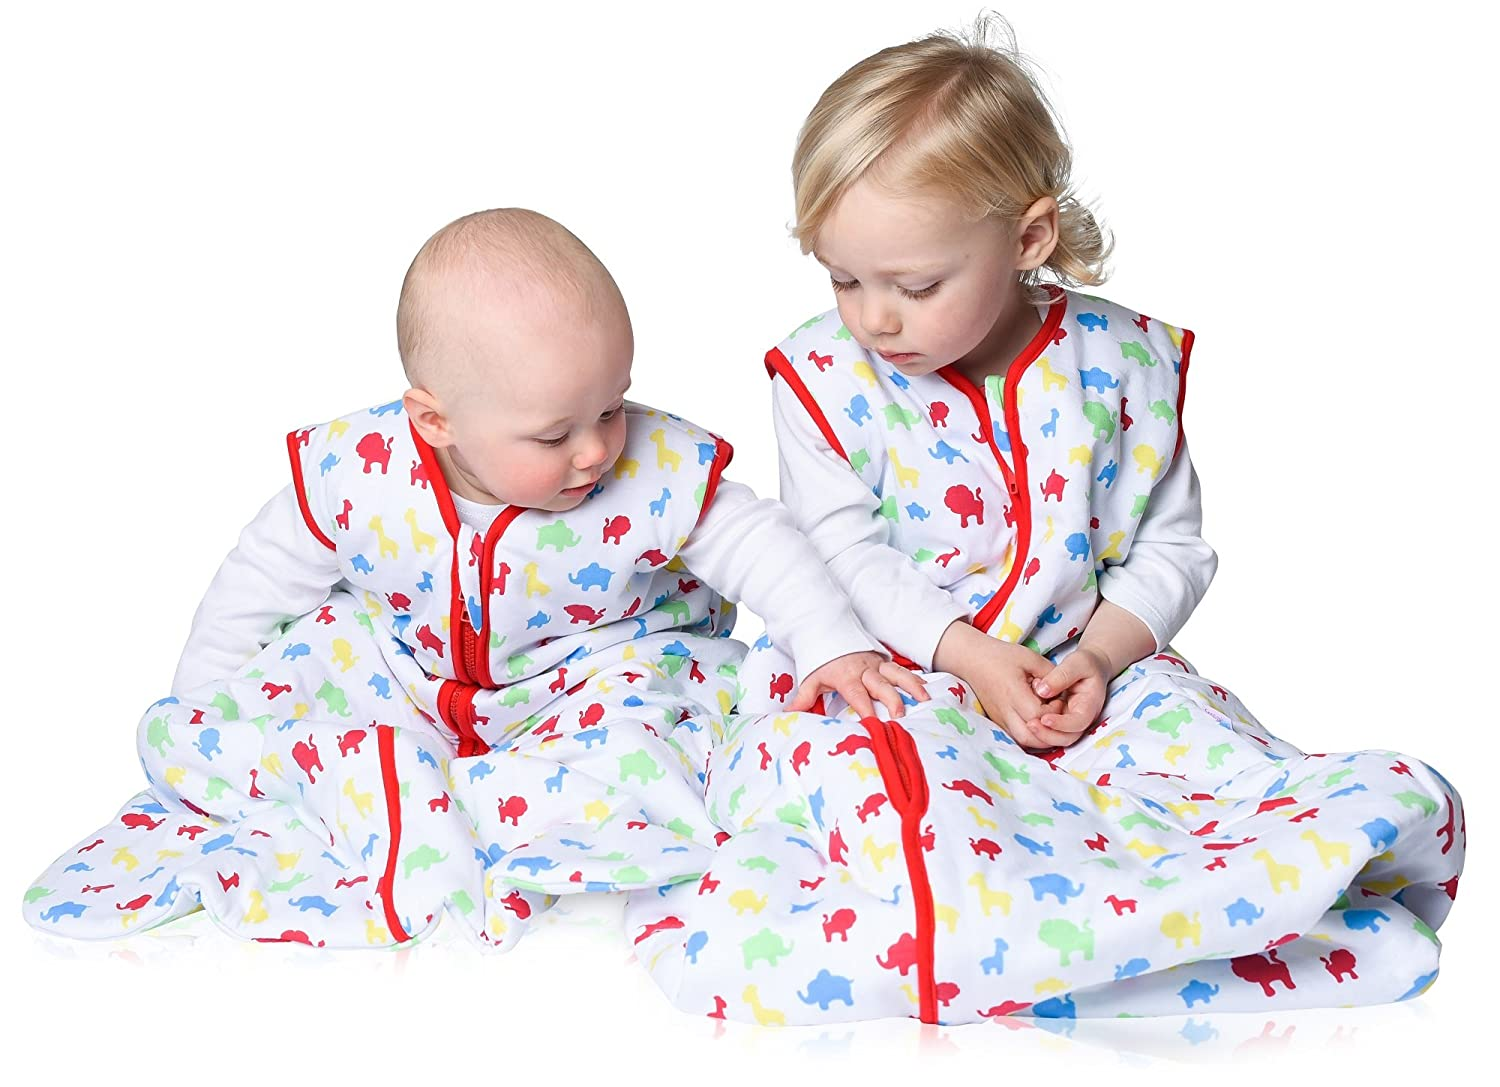 Snoozebag Twin Pack Planes /& Trains 2 Pack Jungle Fun 100/% Cotton 2.5 Tog Boys Nursery Baby Sleeping Bag Multi-Coloured 18-36 Months 110cm